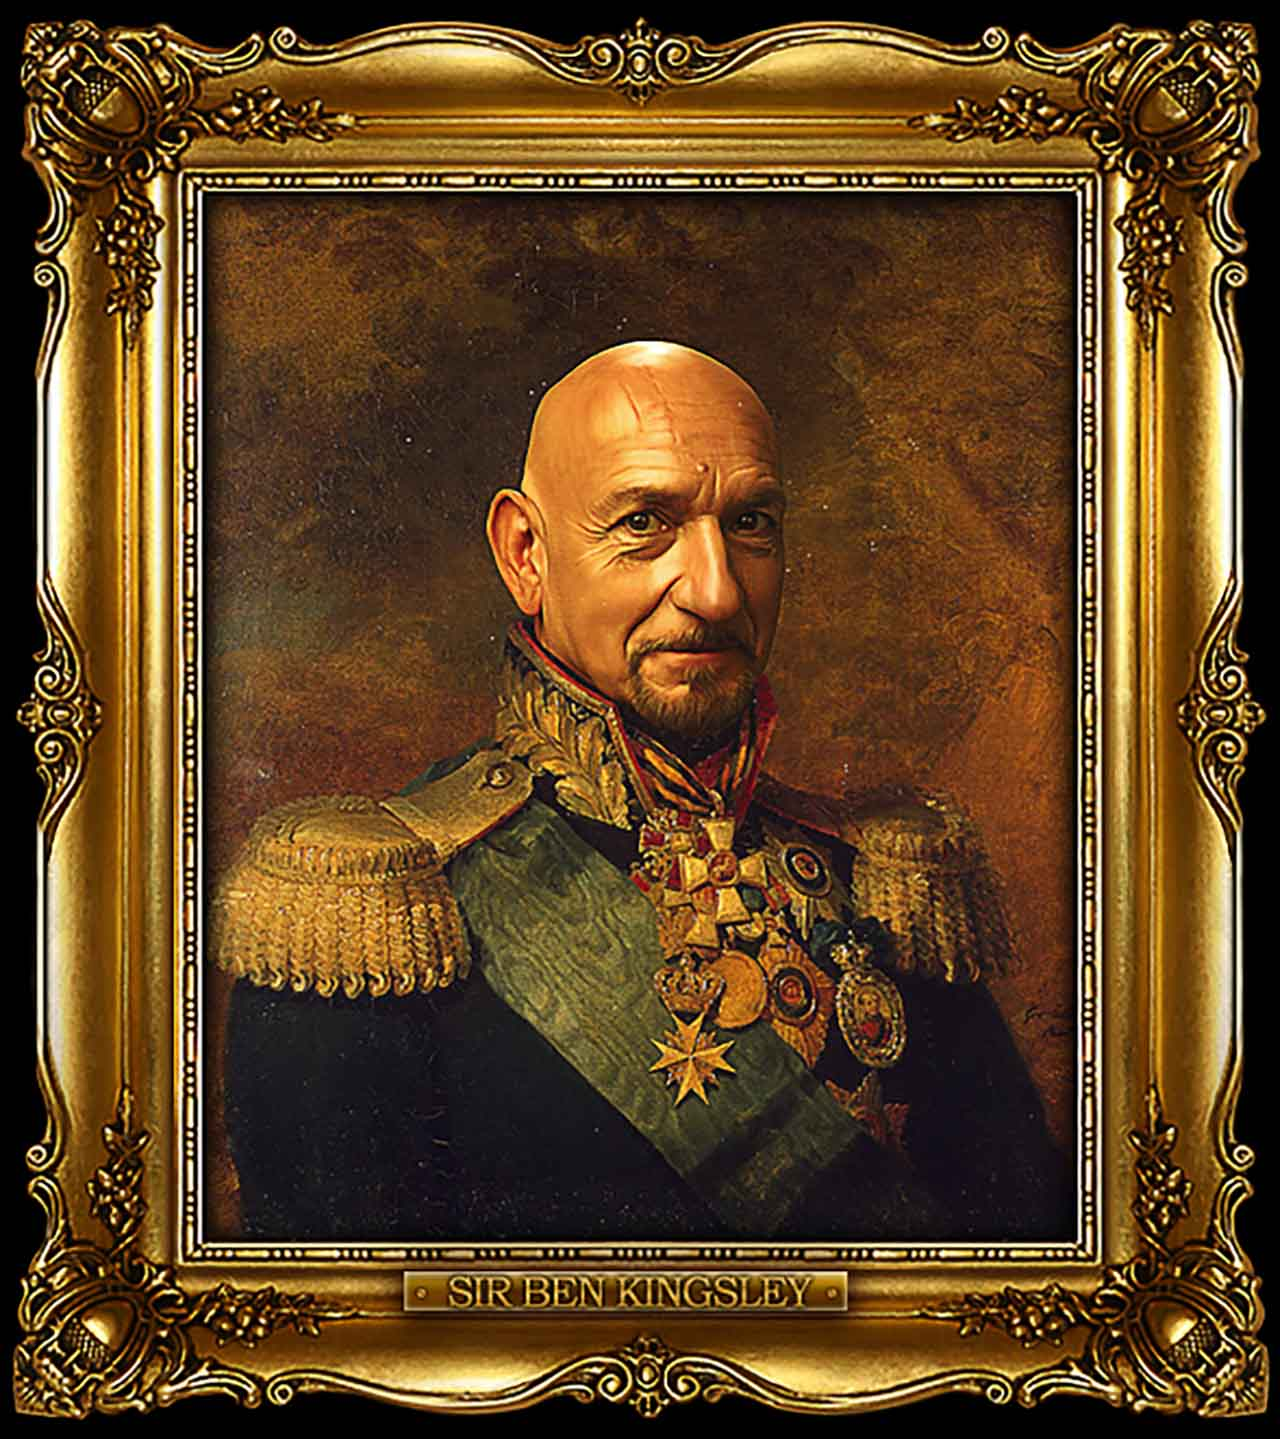 Artist Turns Famous Actors Into Russian Generals - Sir Ben Kingsley